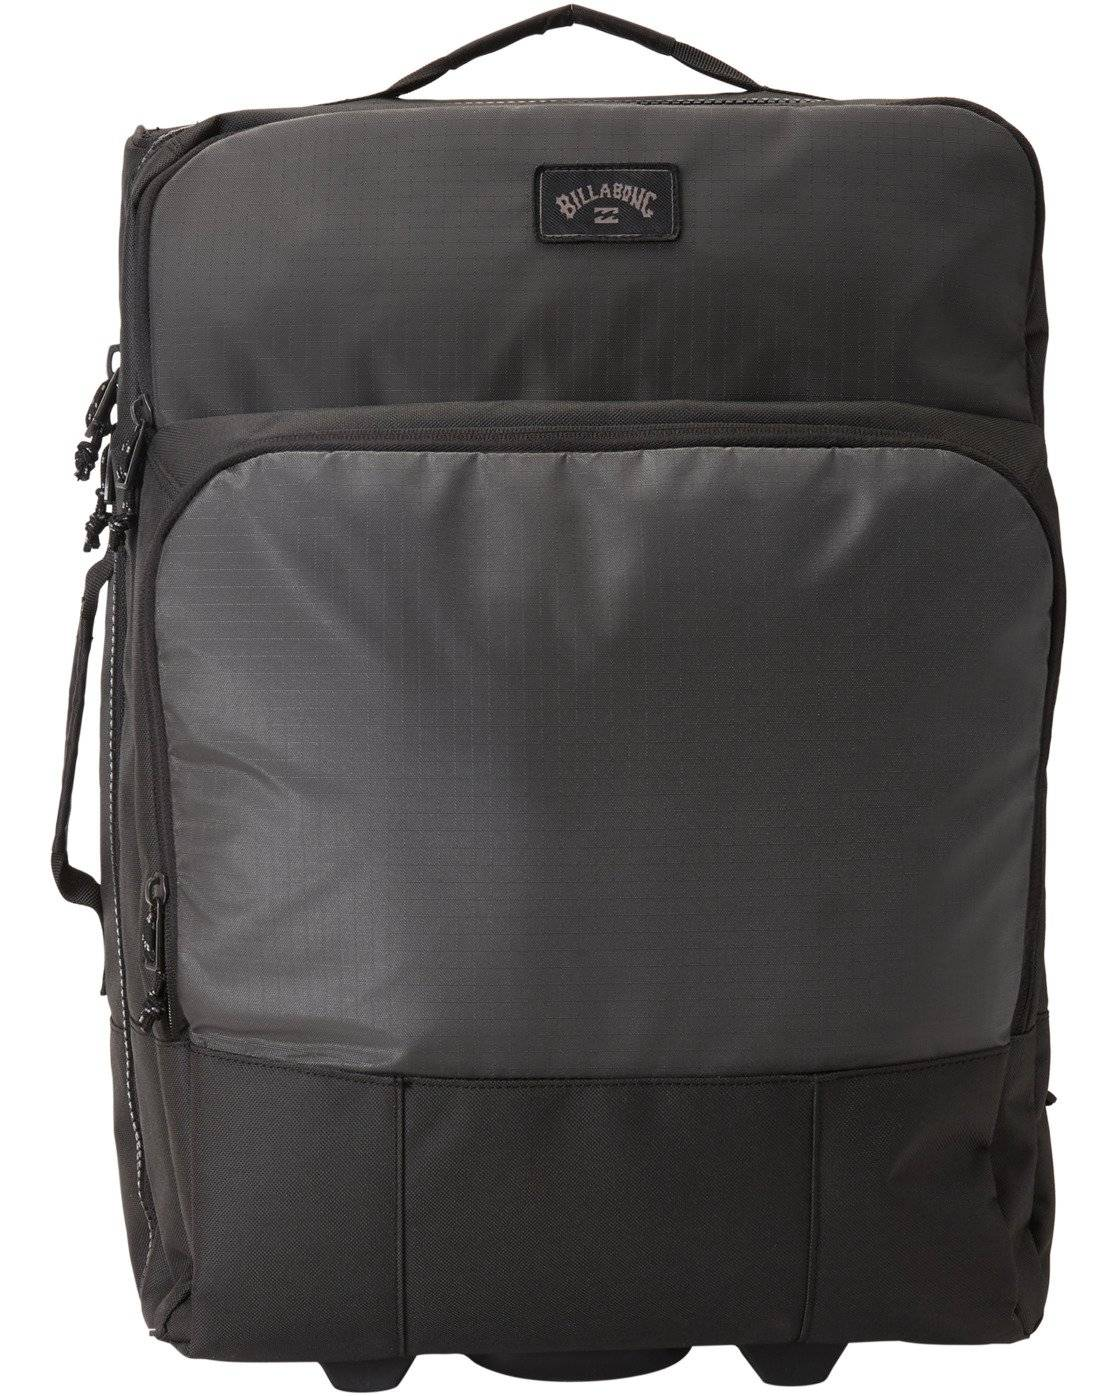 Billabong Booster Carry On  - Multicolor - Size: One Size